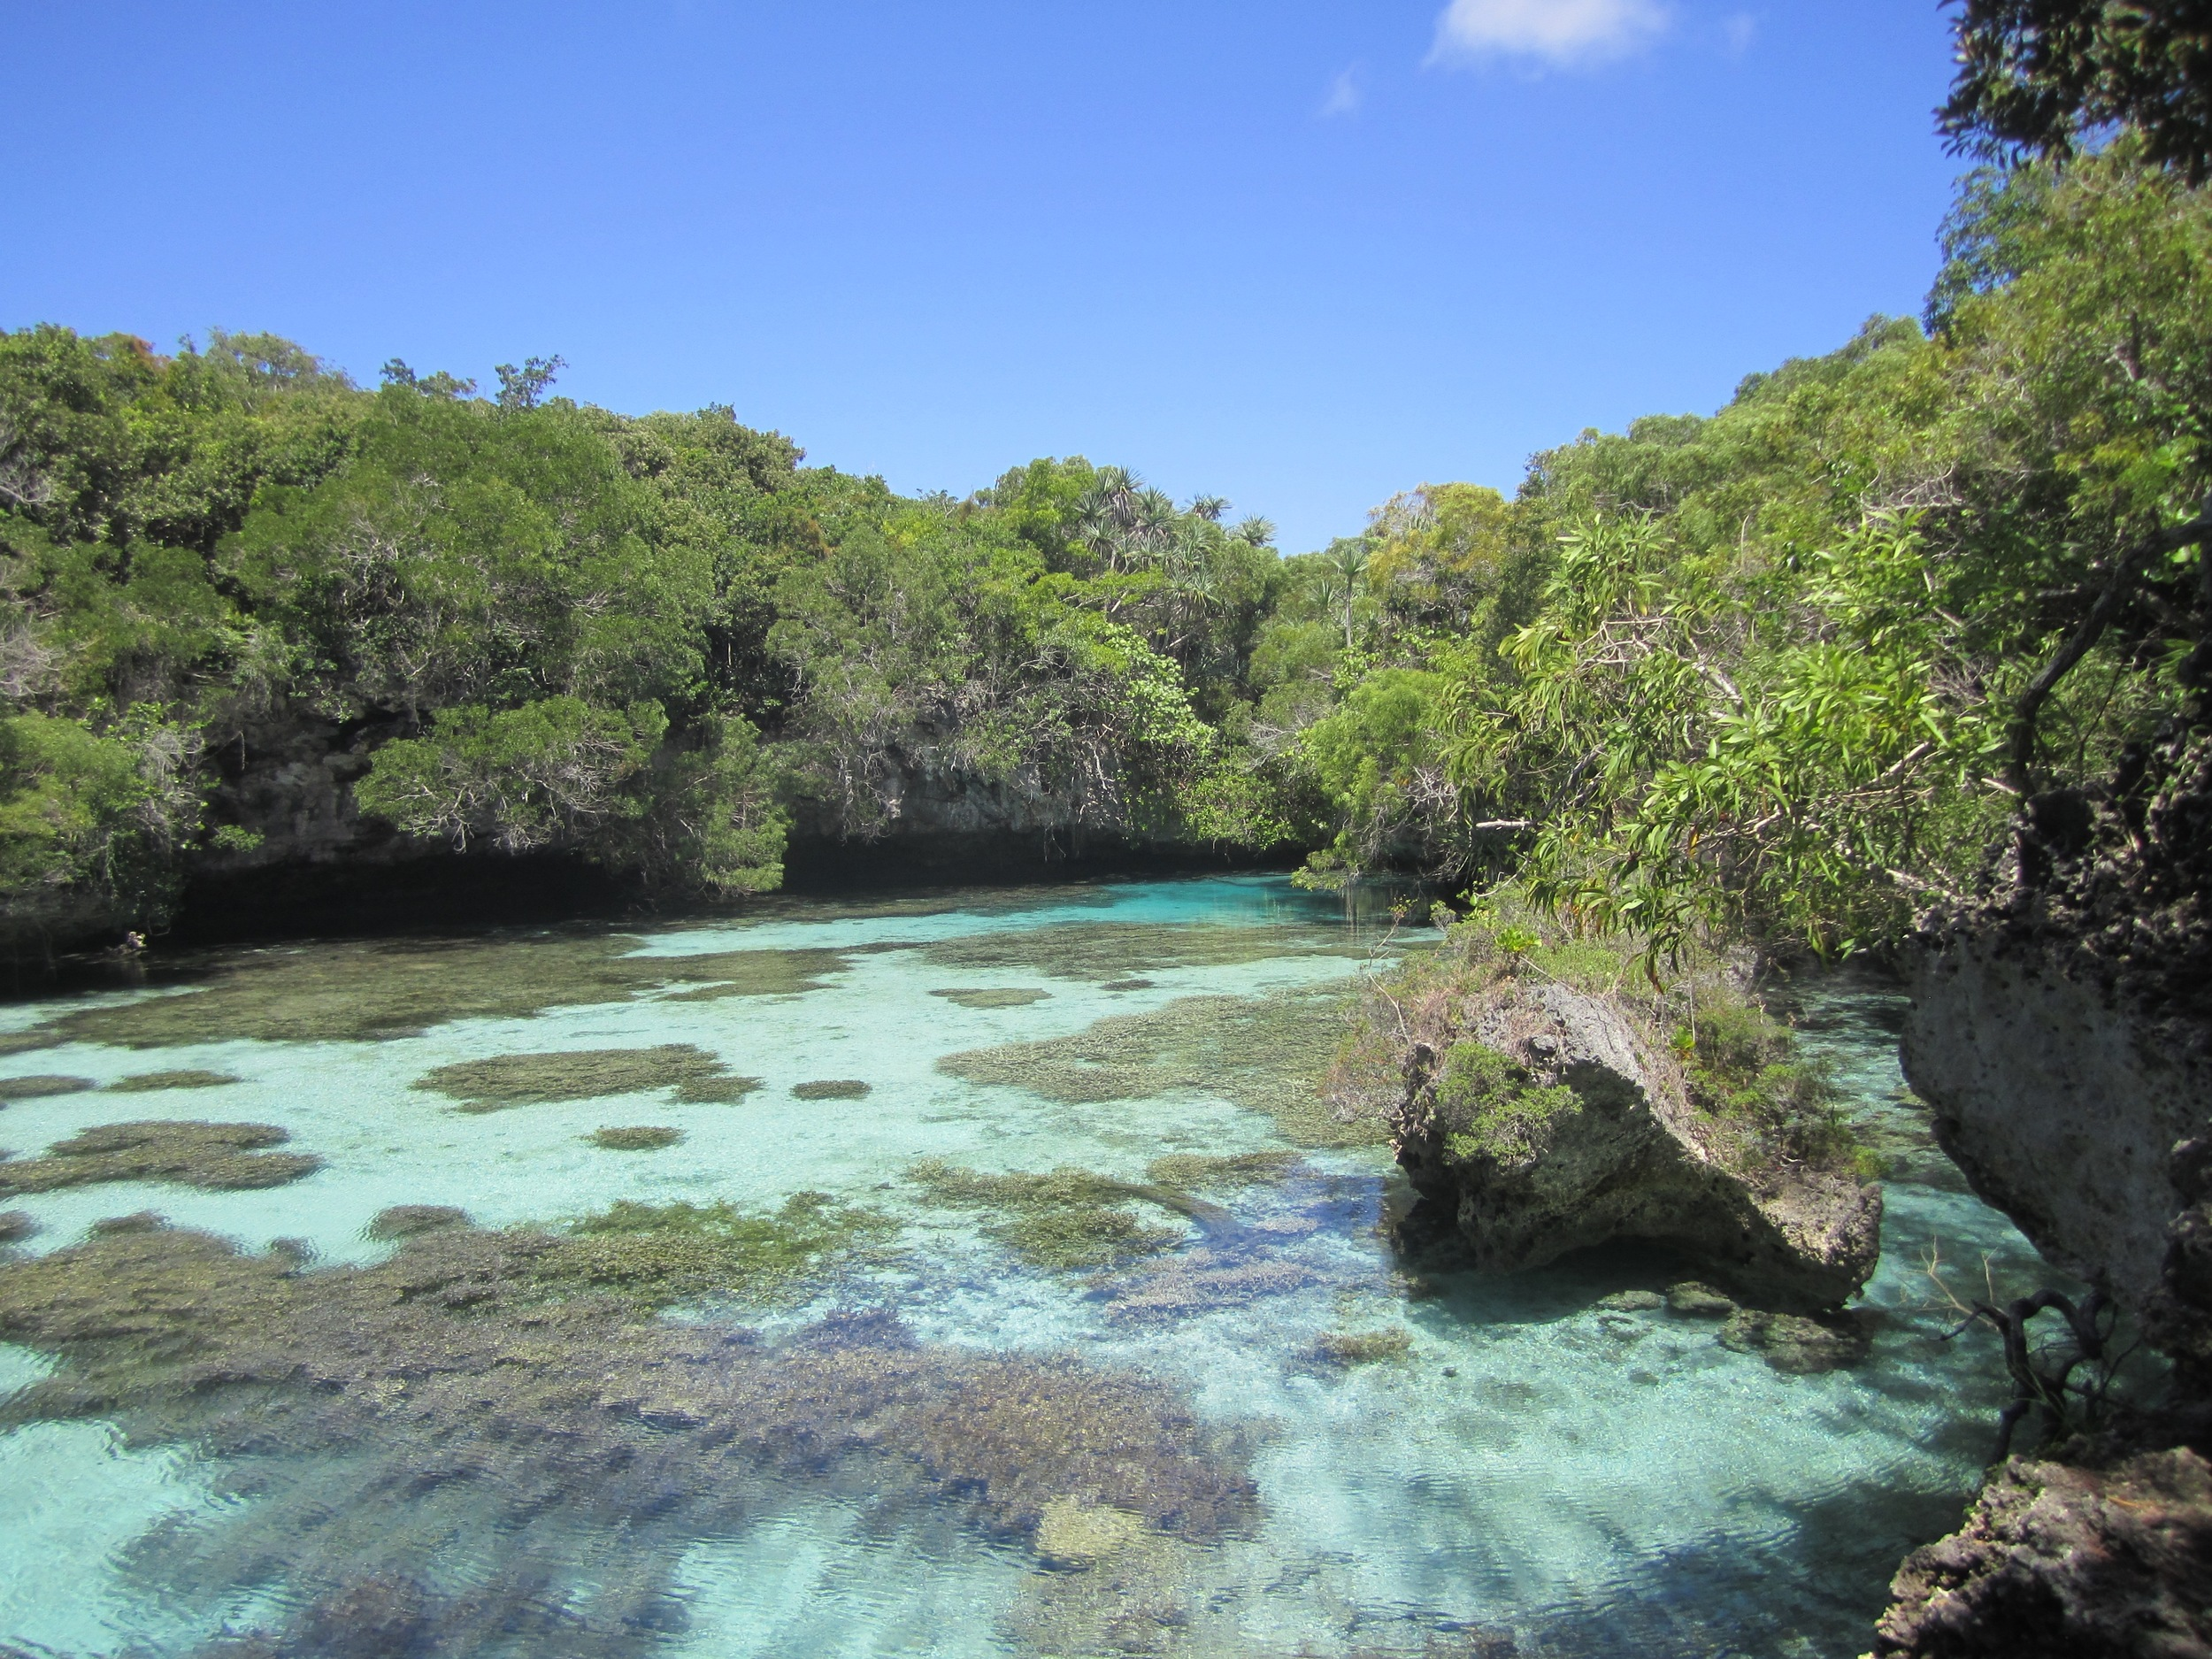 The  Aquarium Naturelle  on Maré is a shaded, coral-ringed natural pool filled with colorful tropical fish.